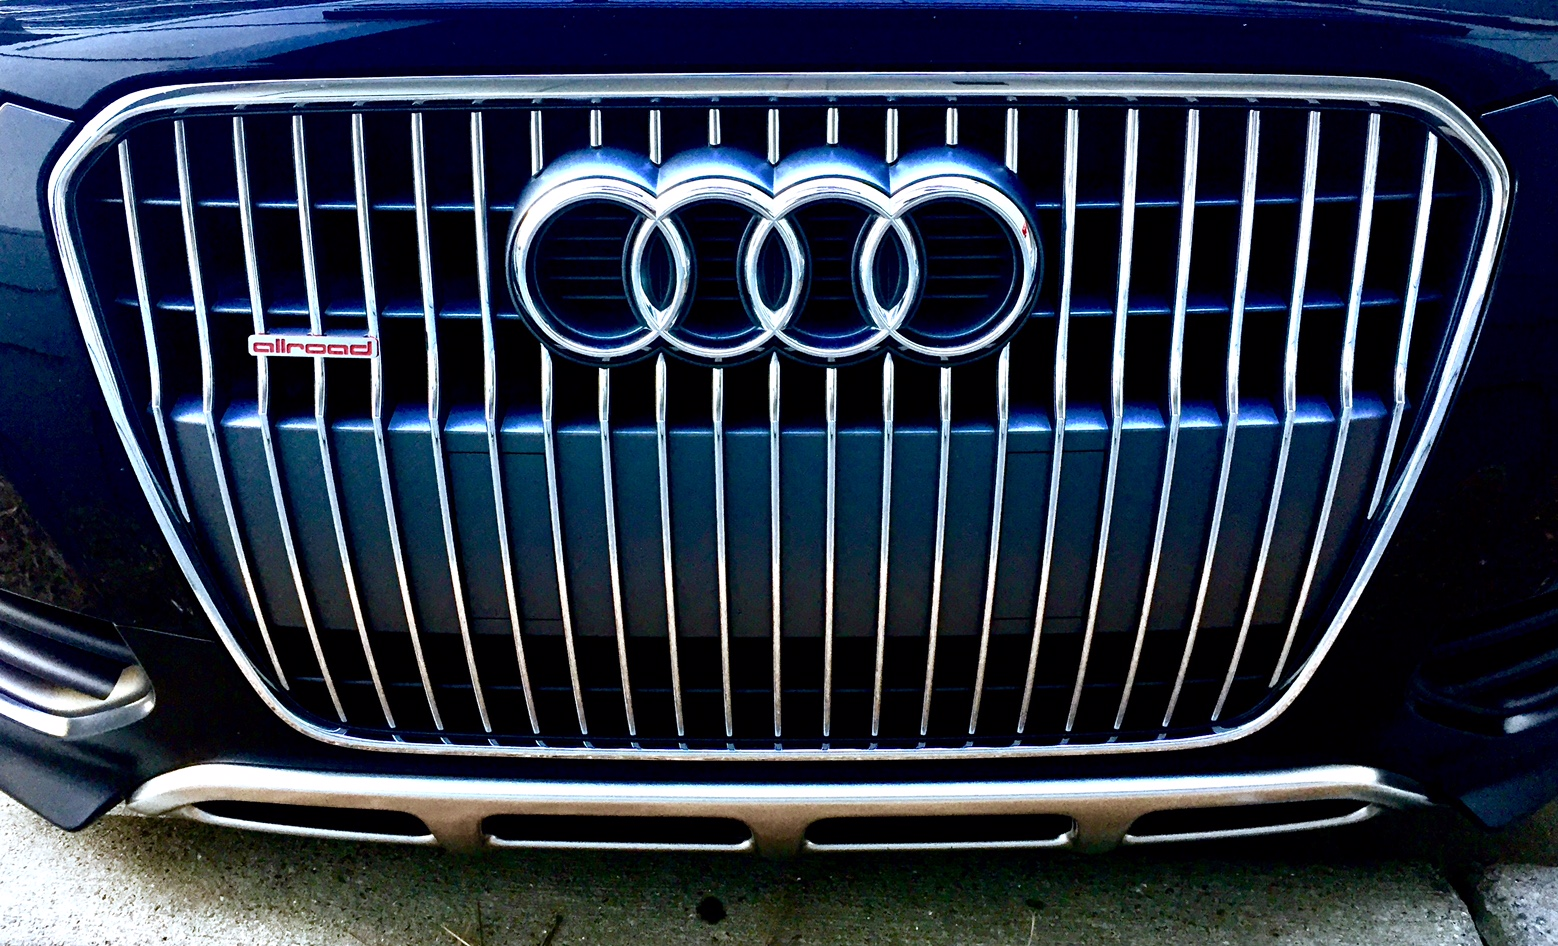 Now available for your C6/B8 Allroad, front grill sport badges!